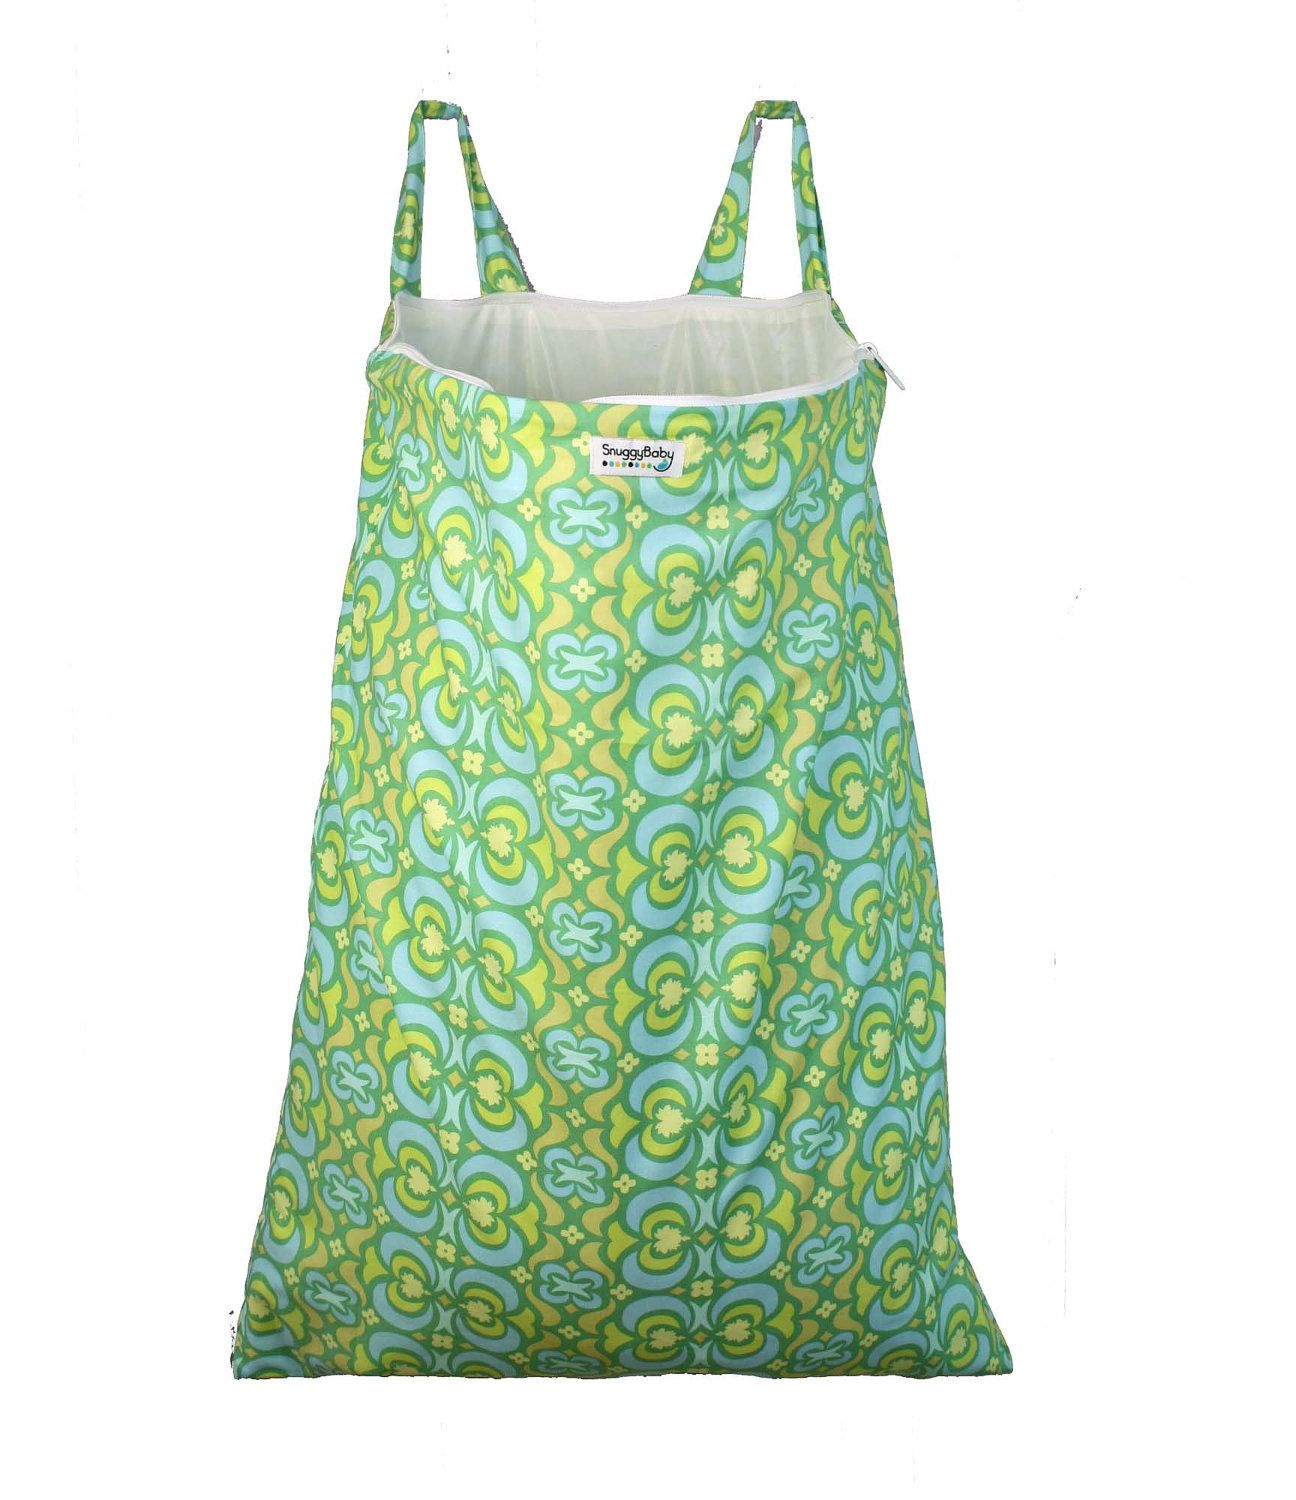 Wet Bag Hanging Laundry Stained By Snuggybaby Perfect To Hang On The Back Of